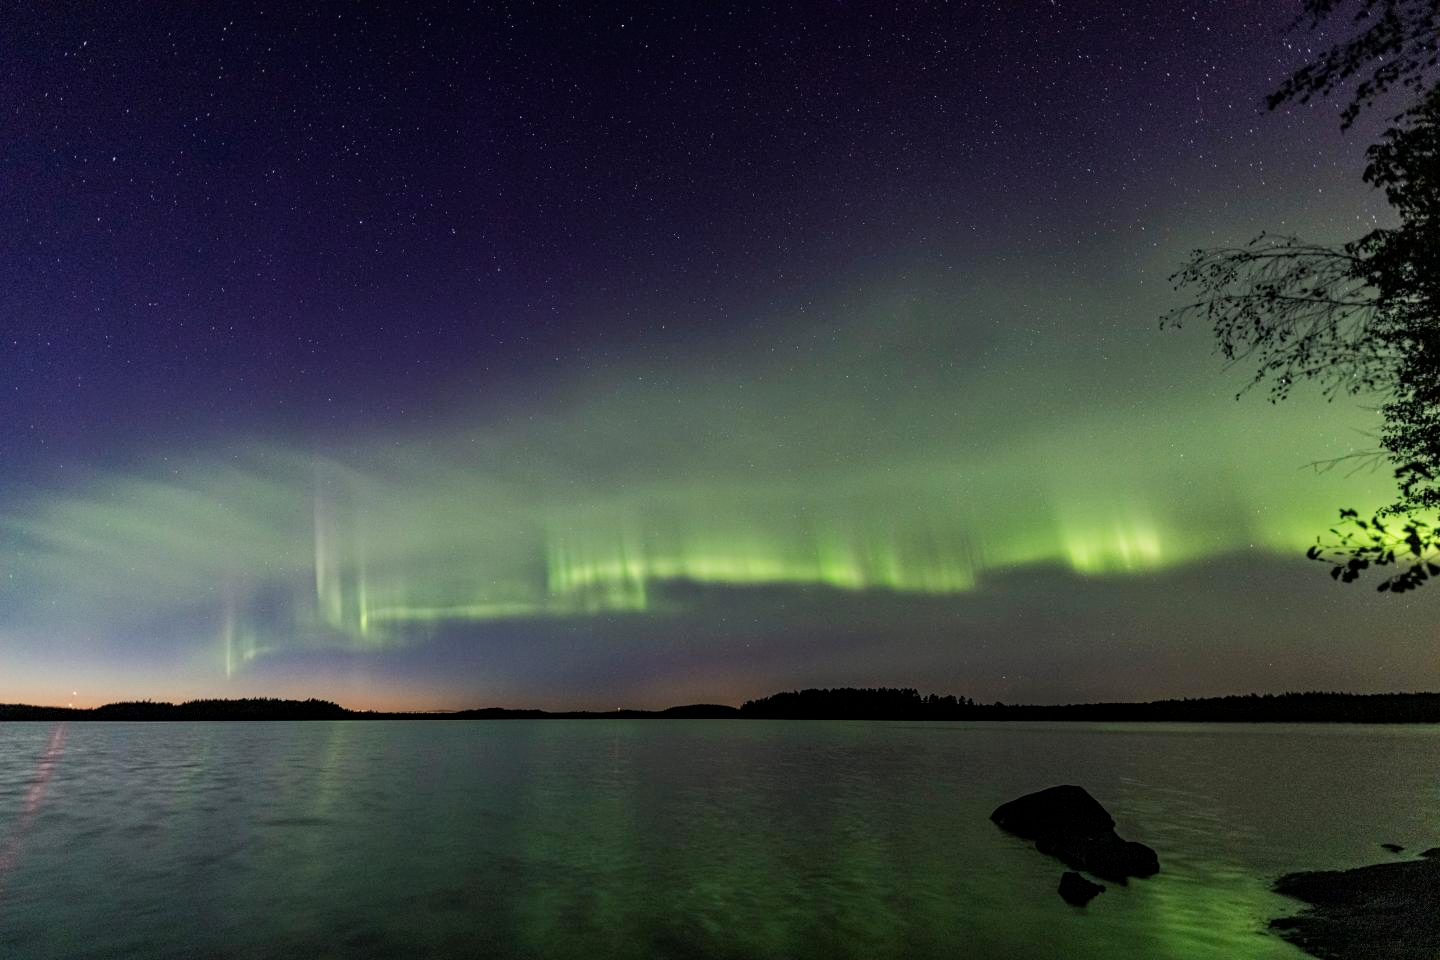 The auroral dunes appear as a green-tinged and even pattern of waves © Kari Saari